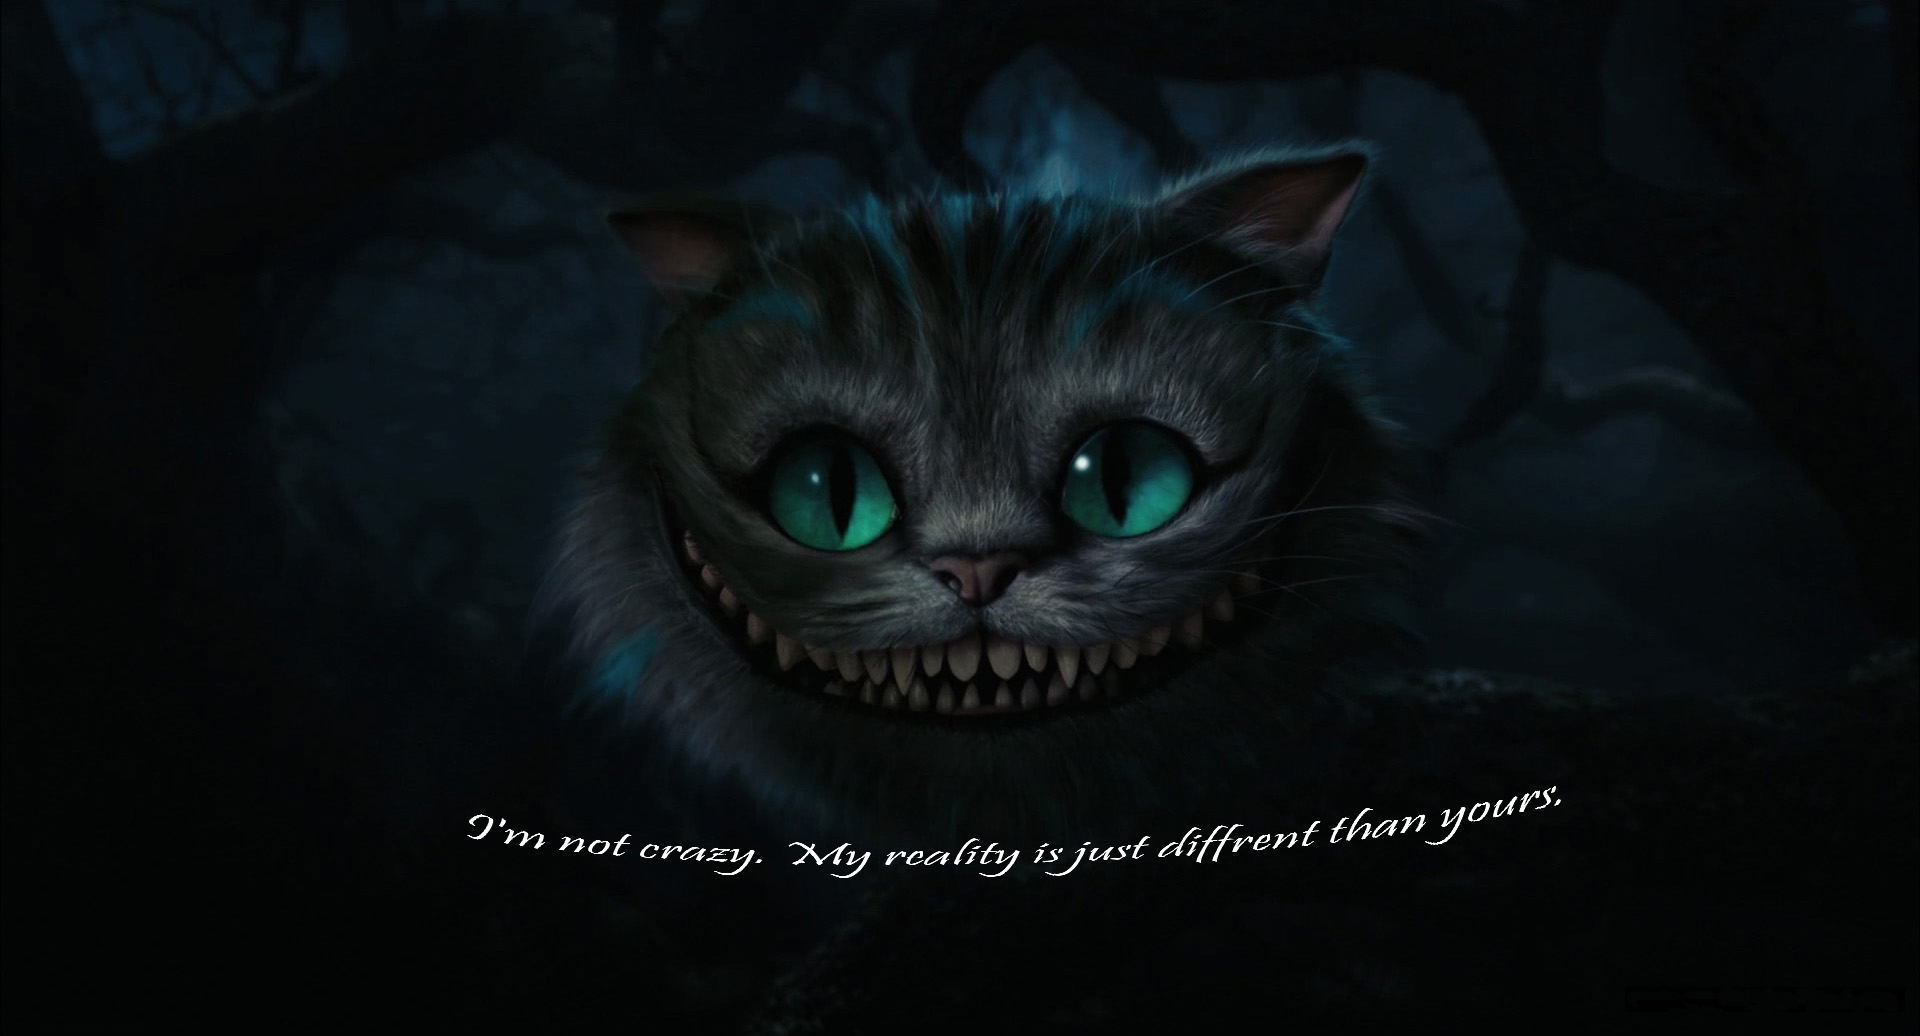 Alpha coders wallpaper abyss movie alice in wonderland 256660